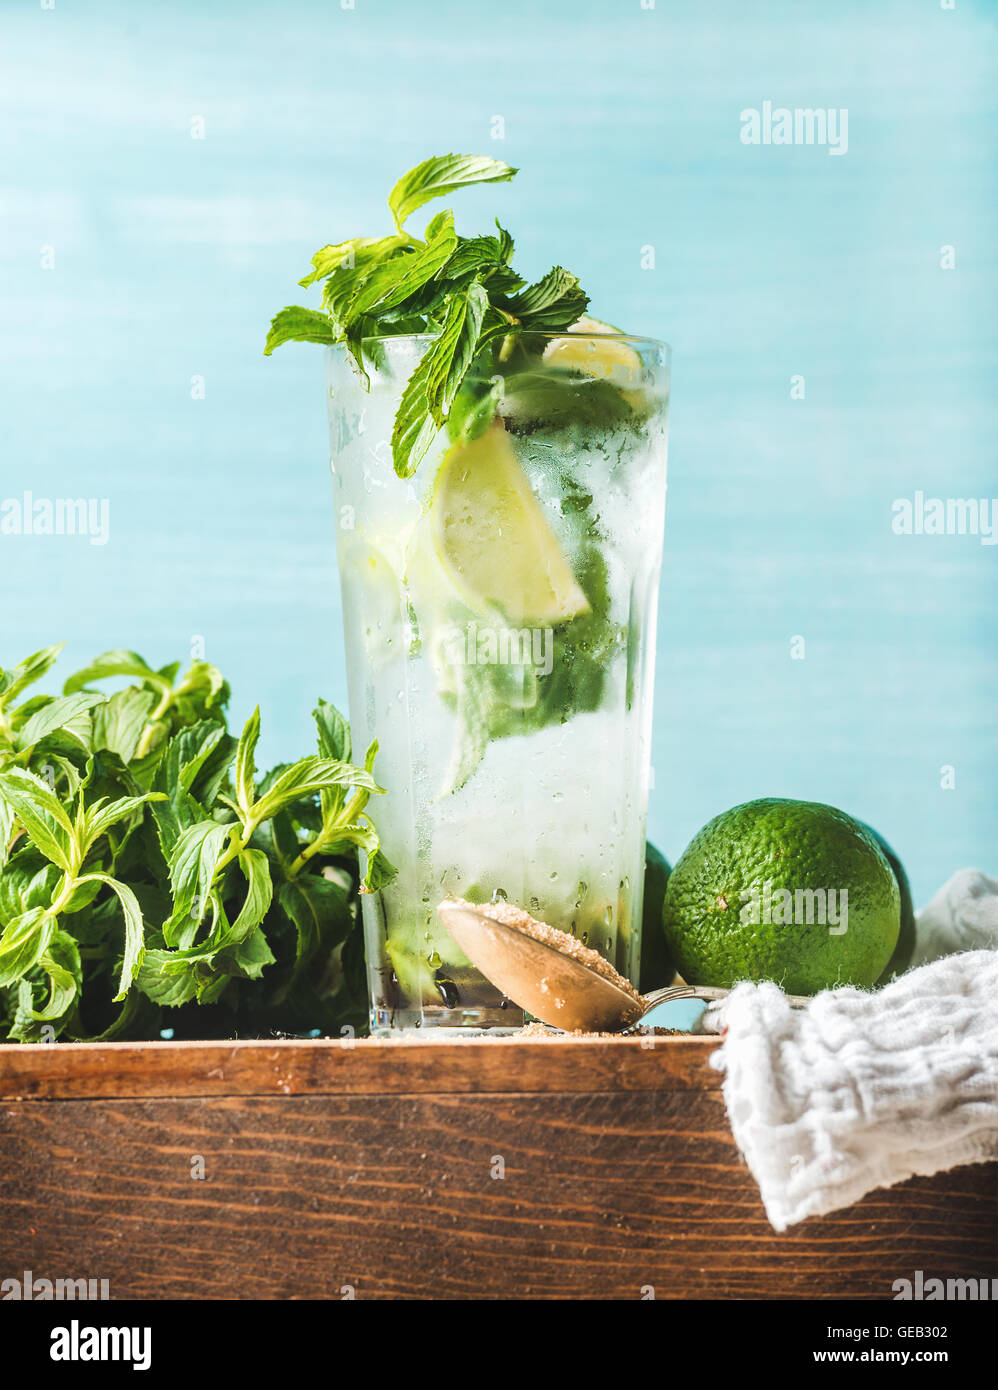 Mojito summer cocktail in tall glass with mint, brown sugar and limes - Stock Image